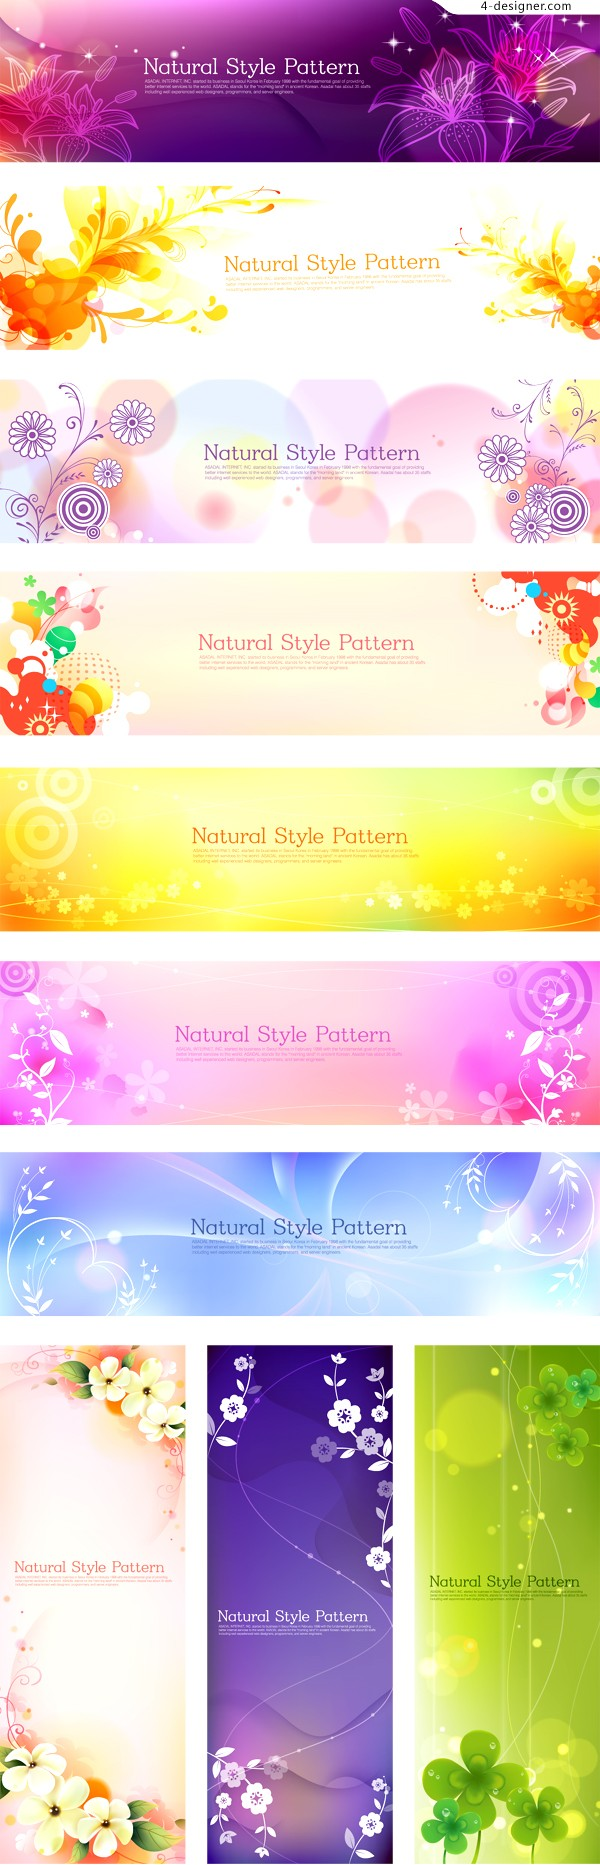 Fantasy flowers banner vector material